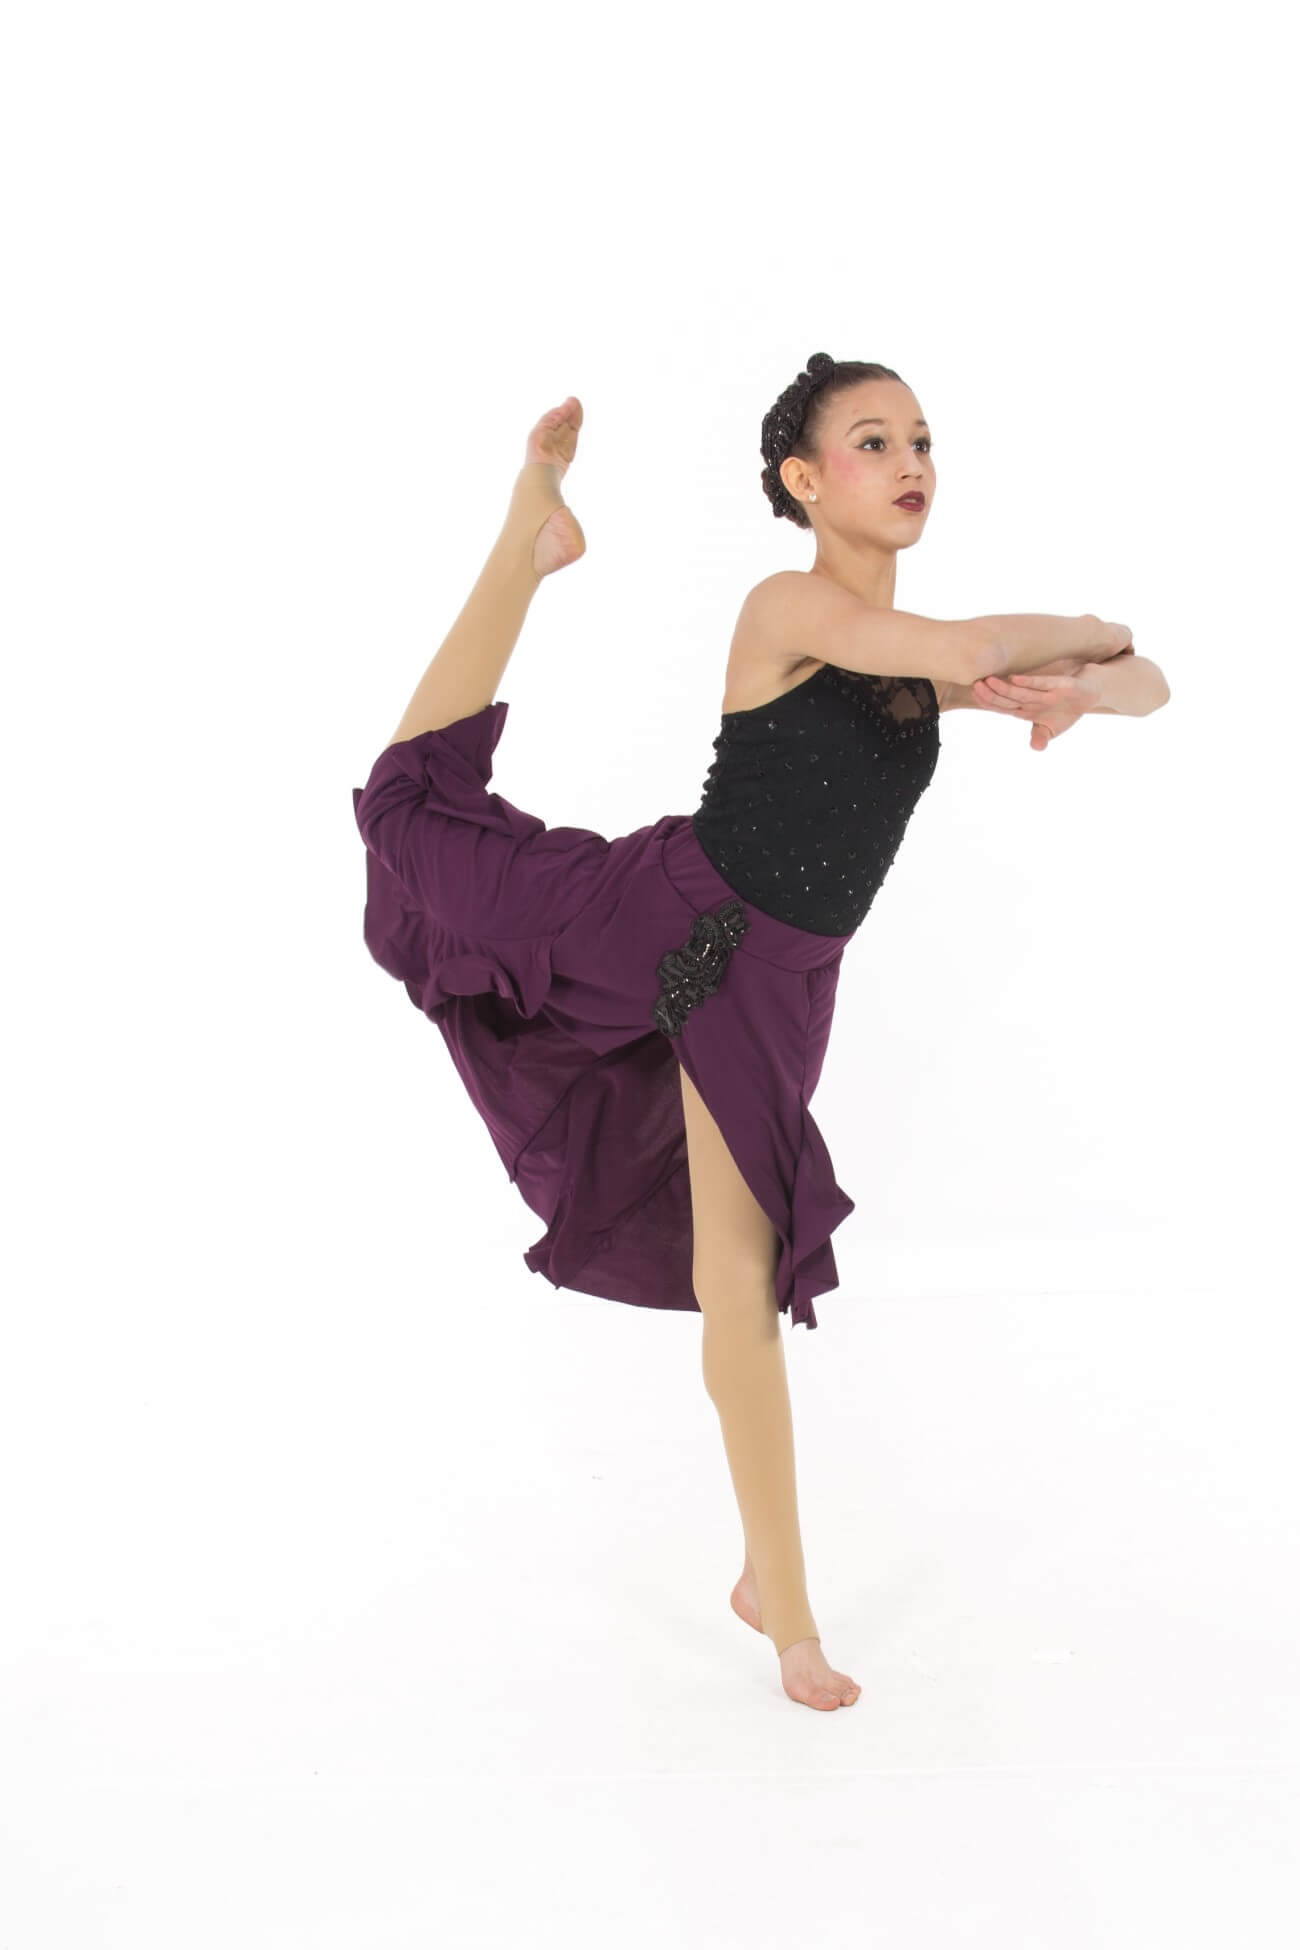 A dancer in purple